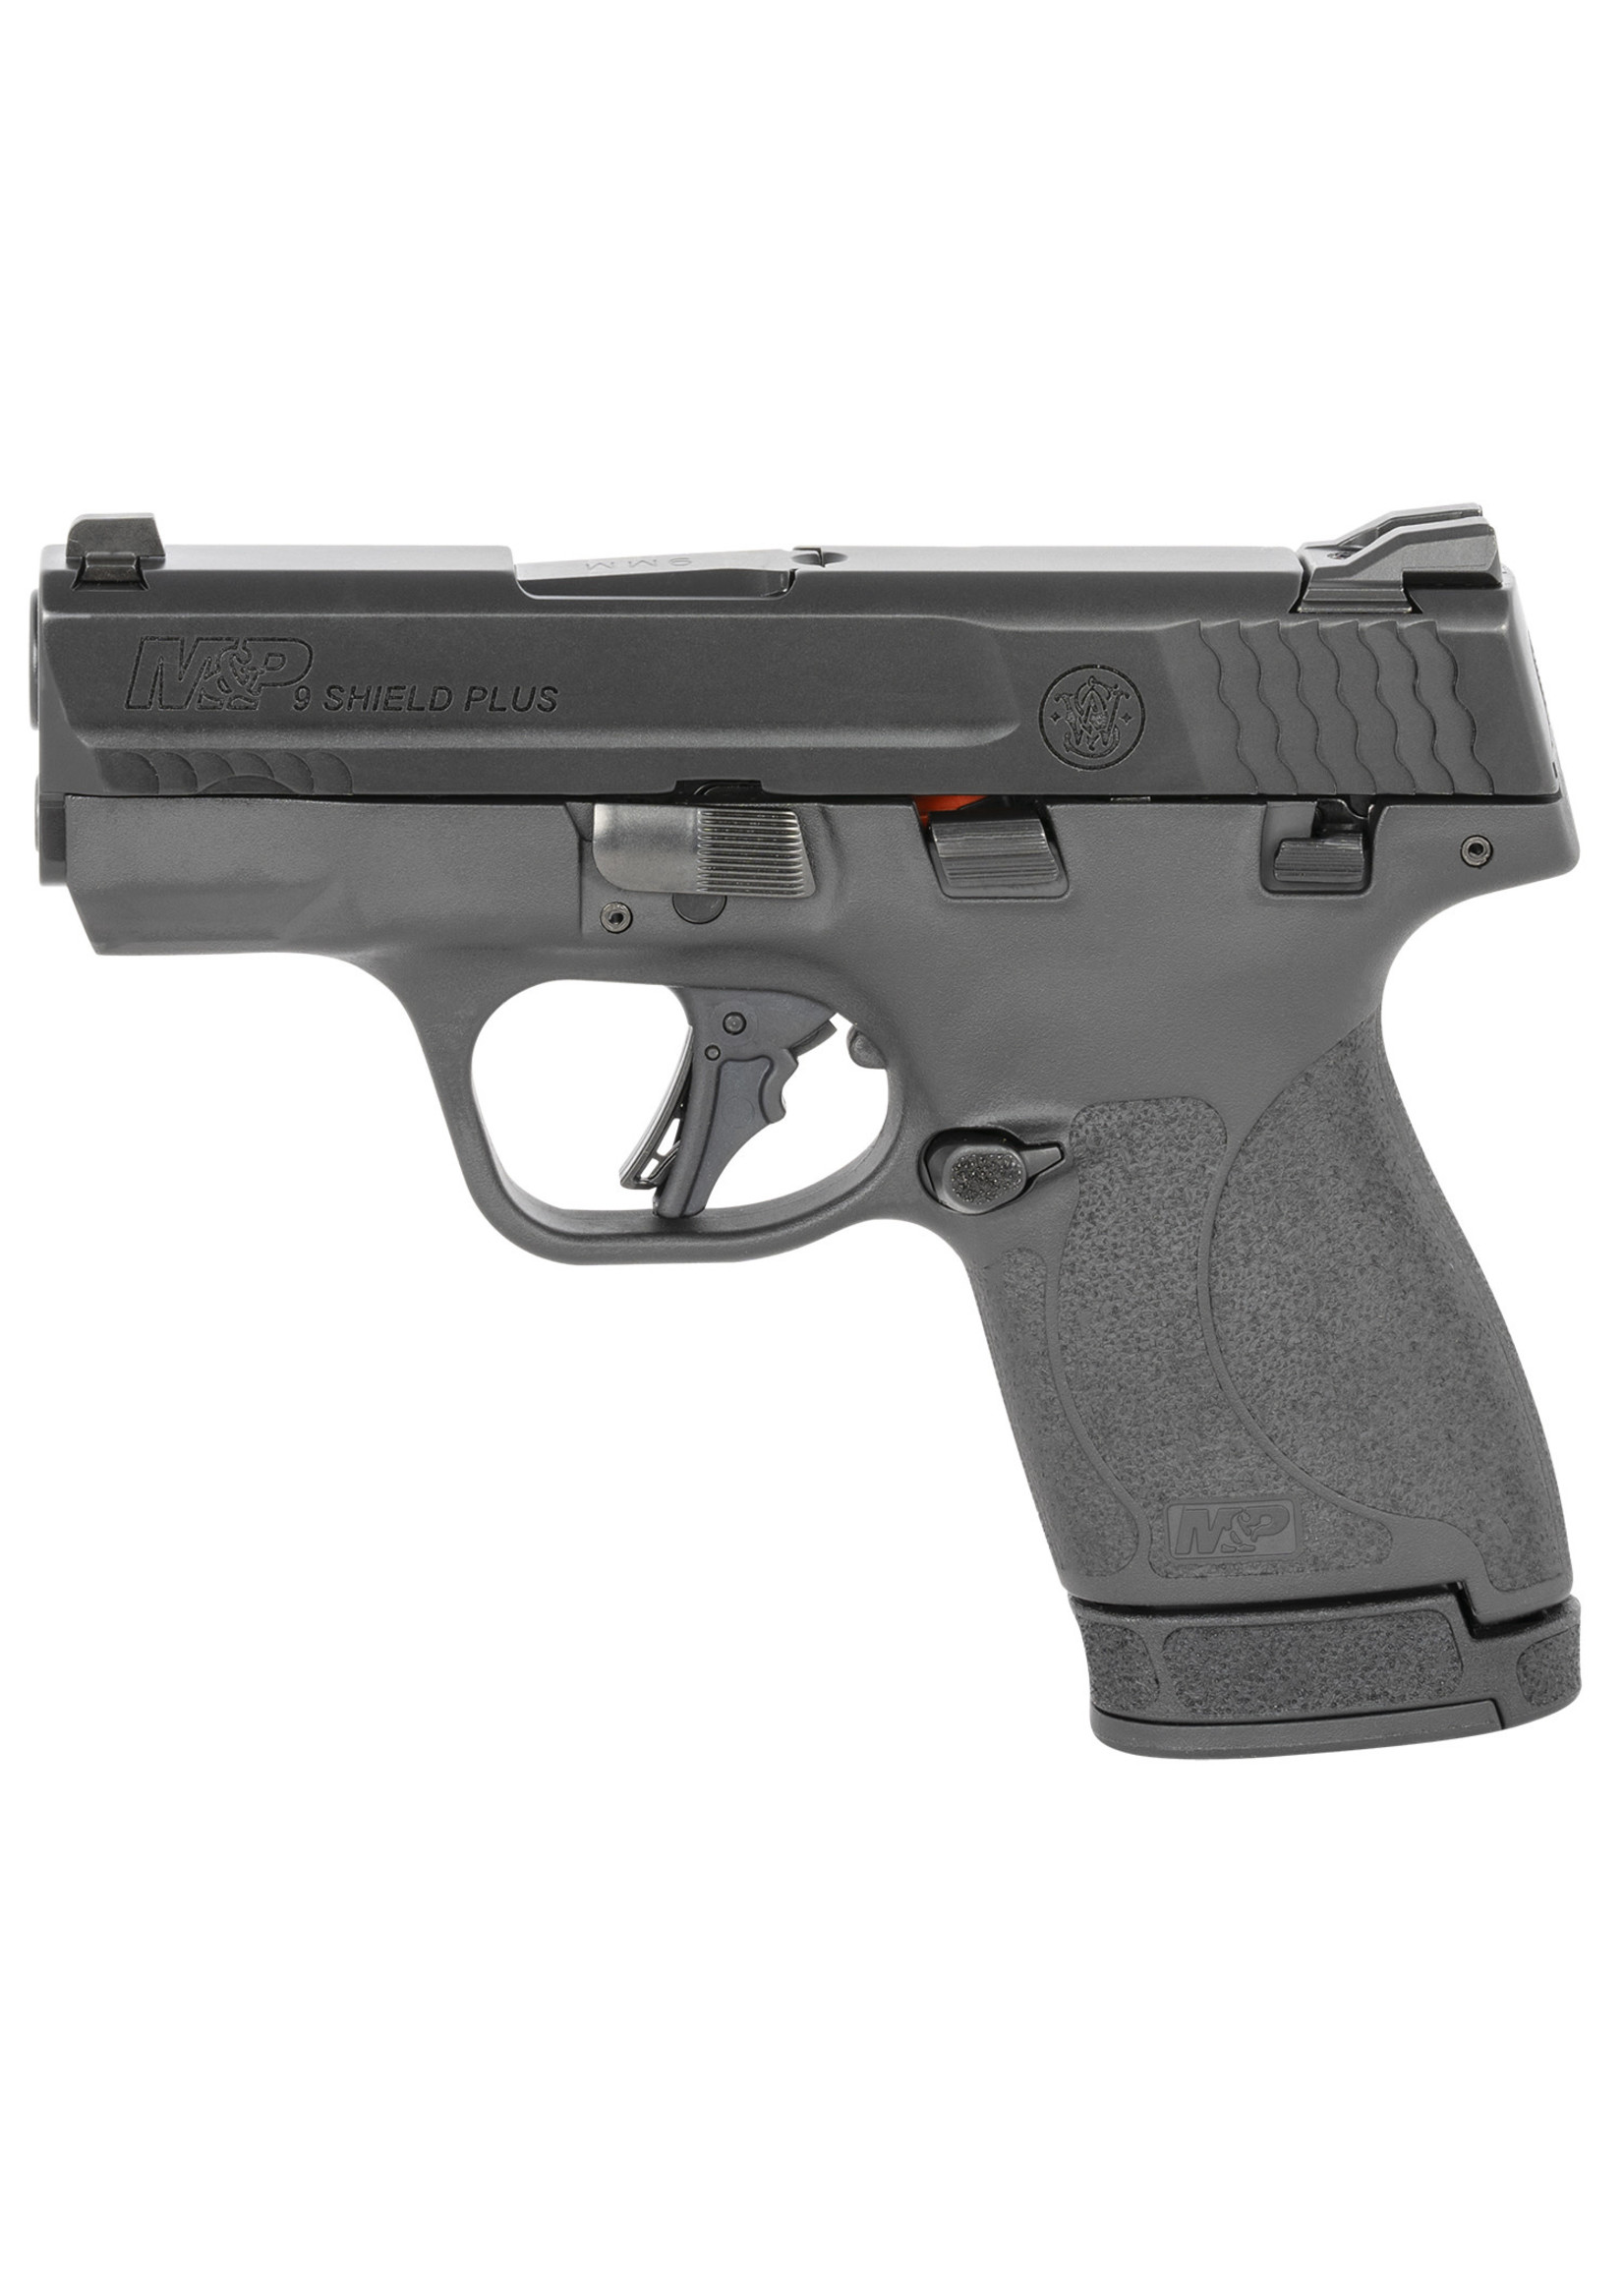 """Smith and Wesson (S&W) Smith & Wesson M&P Shield Plus, 9mm, 3.10"""" 10+1, 13+1, Matte Black Armornite Stainless Steel Slide, manual safety"""